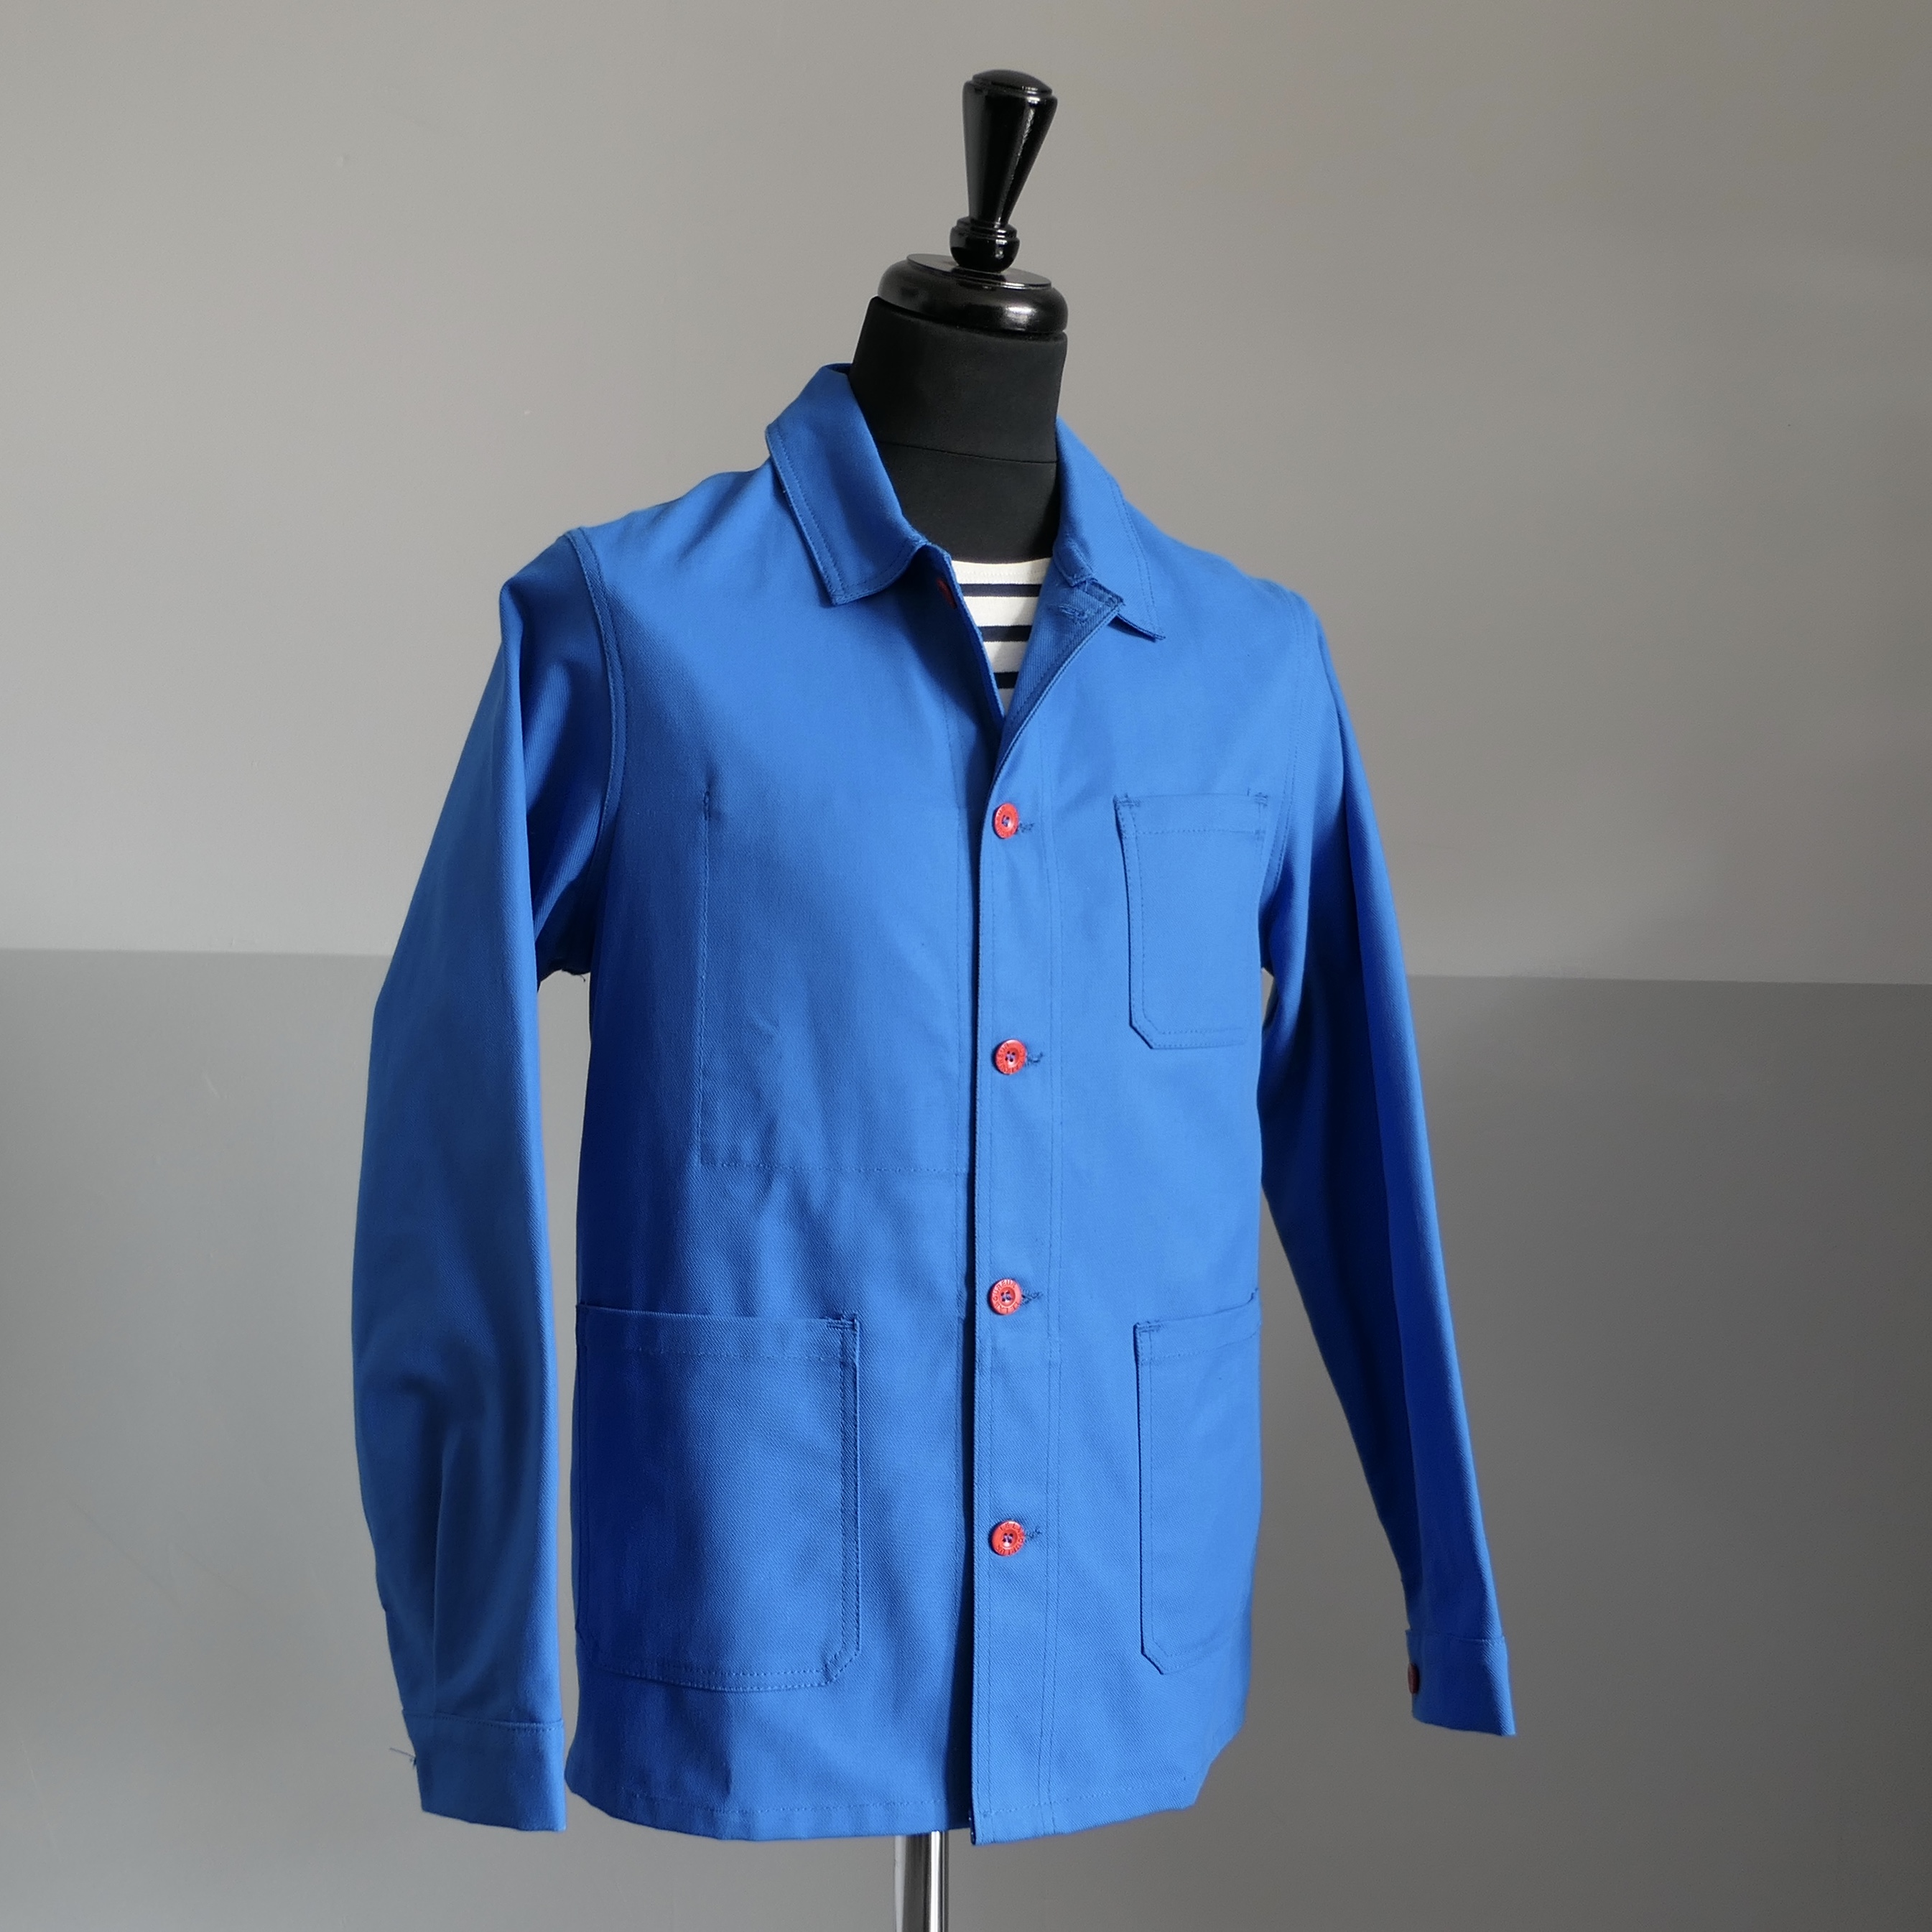 Worker's Overshirt - Azur blue